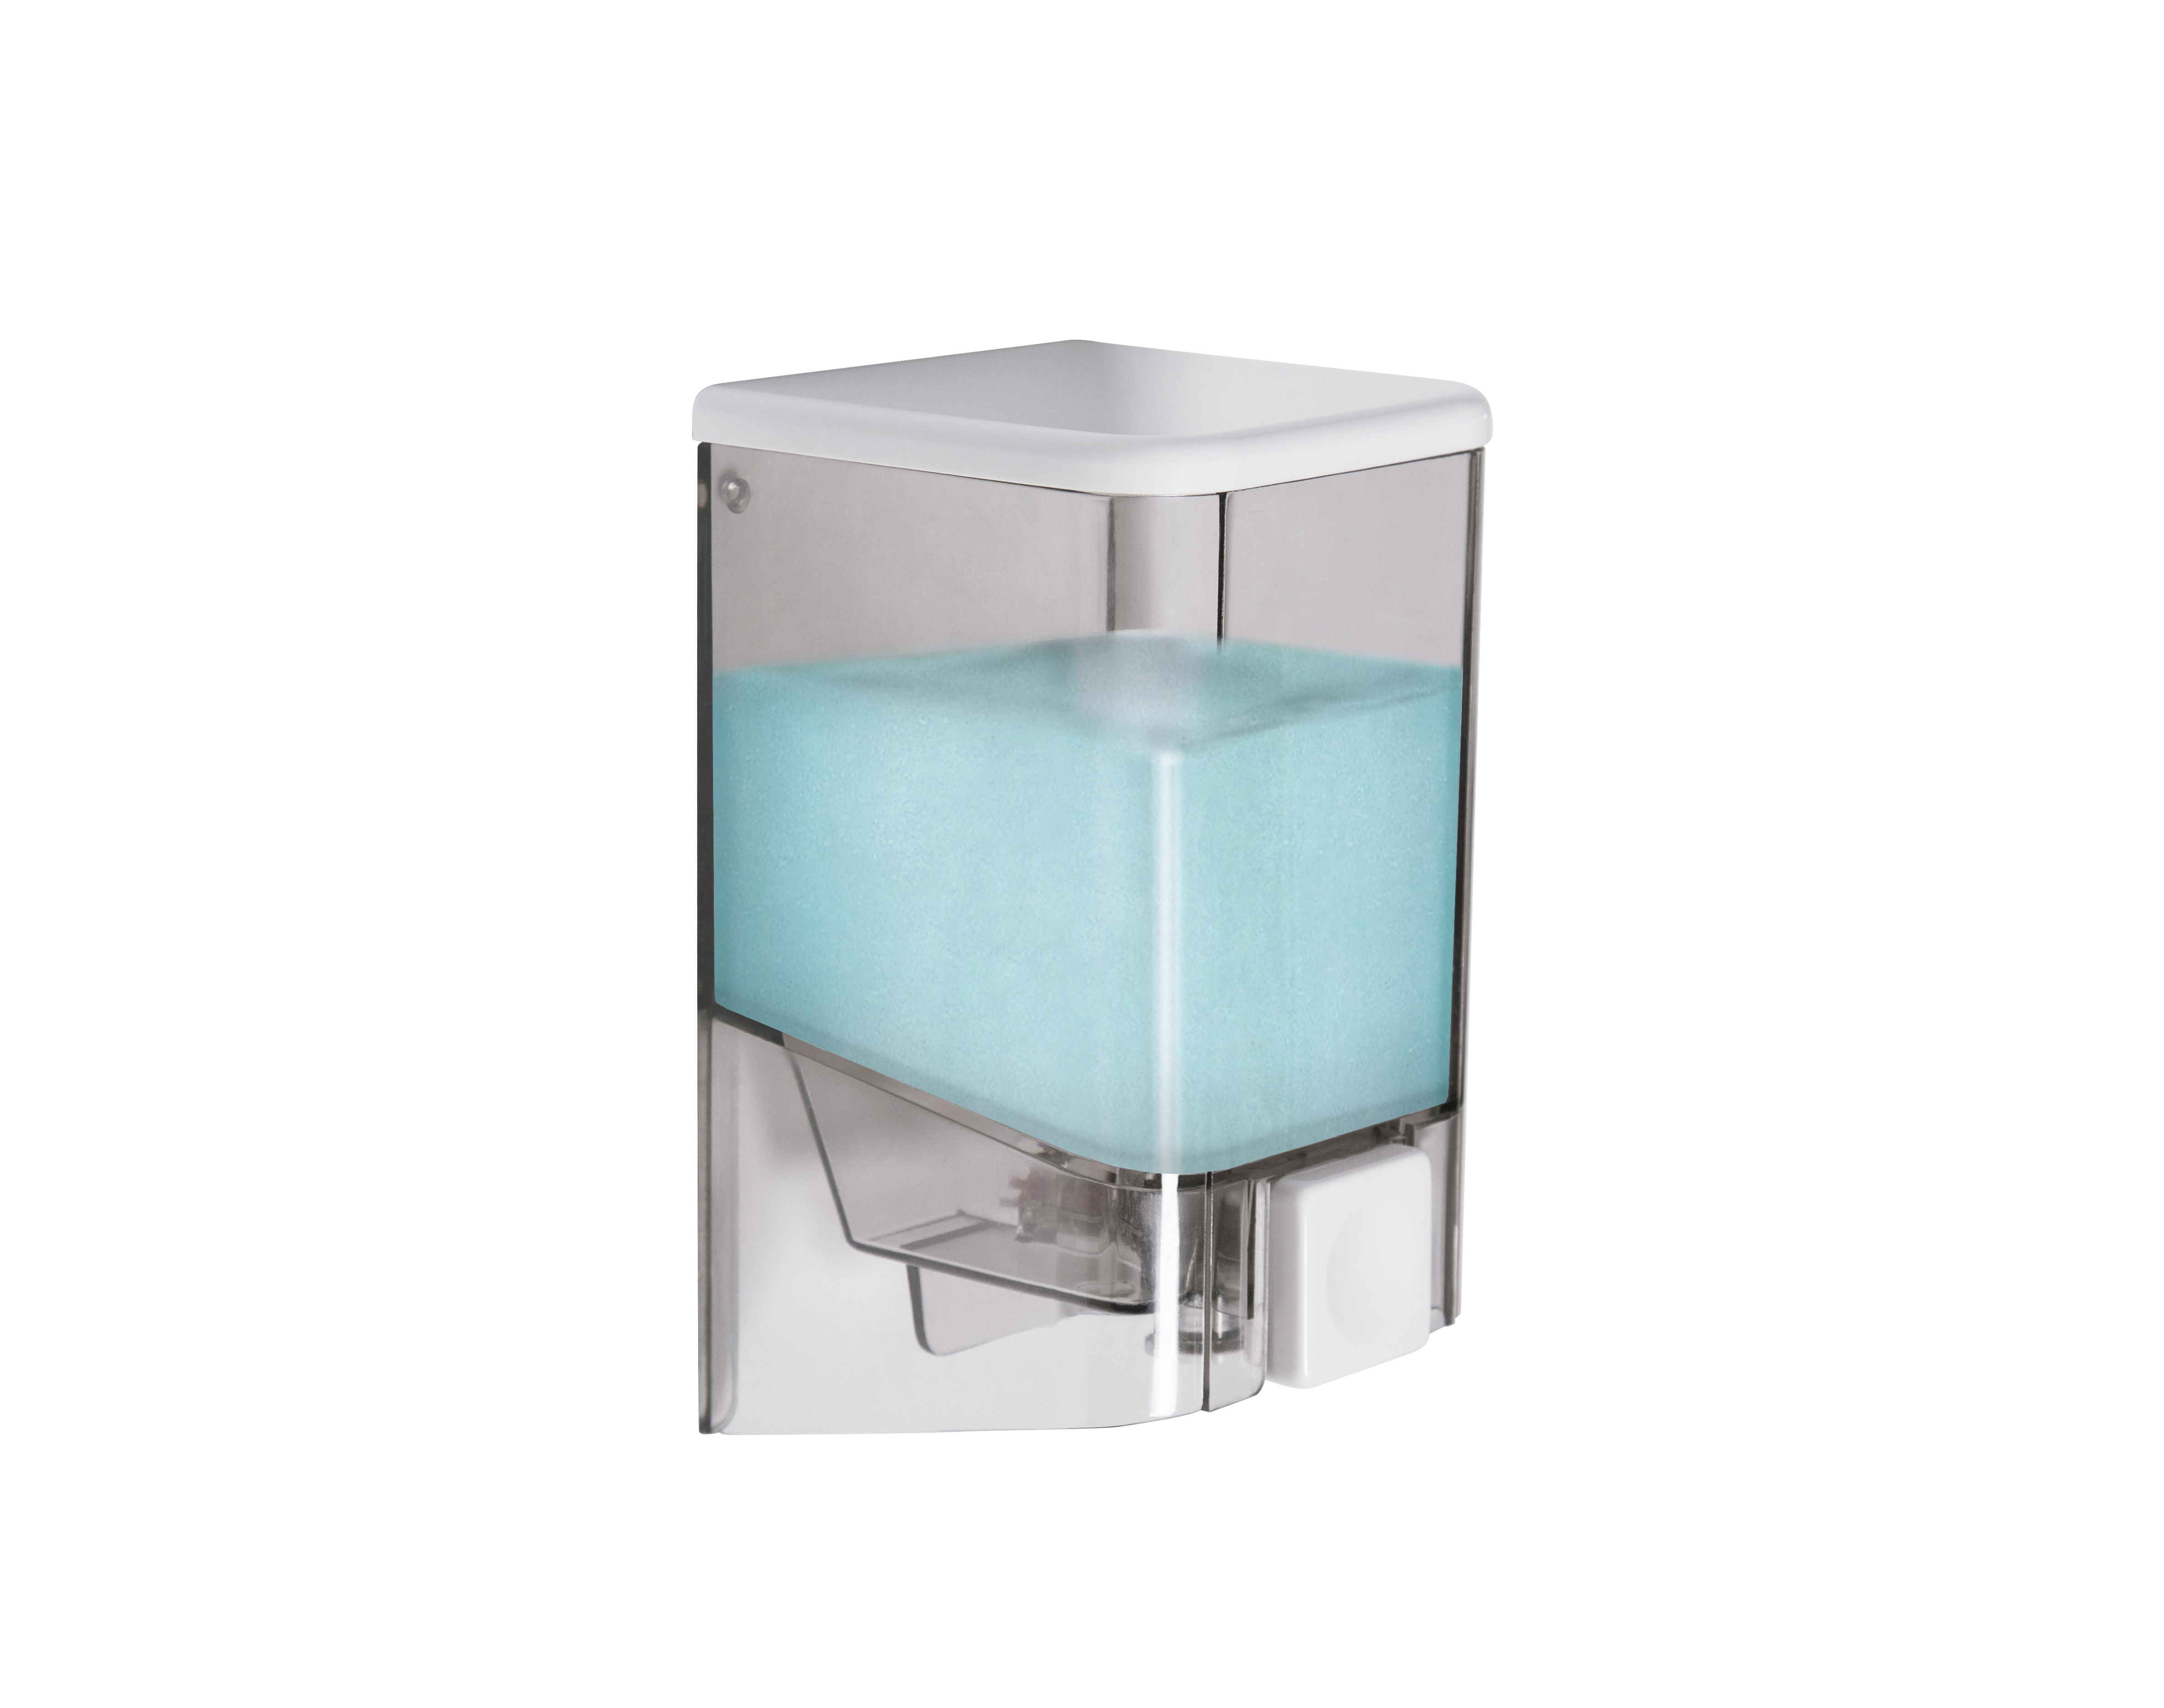 Soap and Sanitiser Dispensers